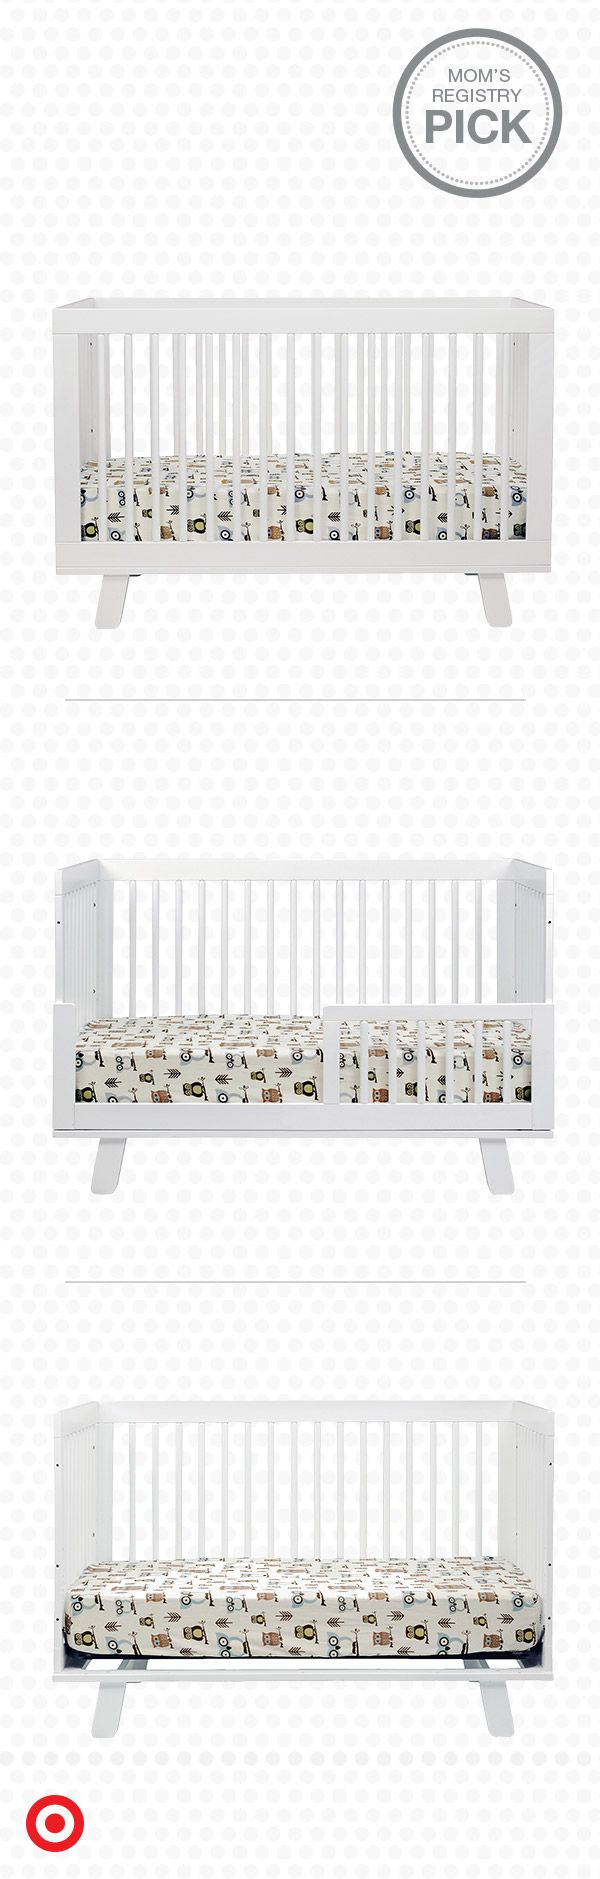 Build your nursery around the Babyletto Hudson 3-in-1 Convertible Crib with toddler rail, a Mom's Registry Pick. As sturdy as it is stylish, this modern crib easily converts to a toddler bed or a daybed as your baby grows. Sweet dreams, little one.